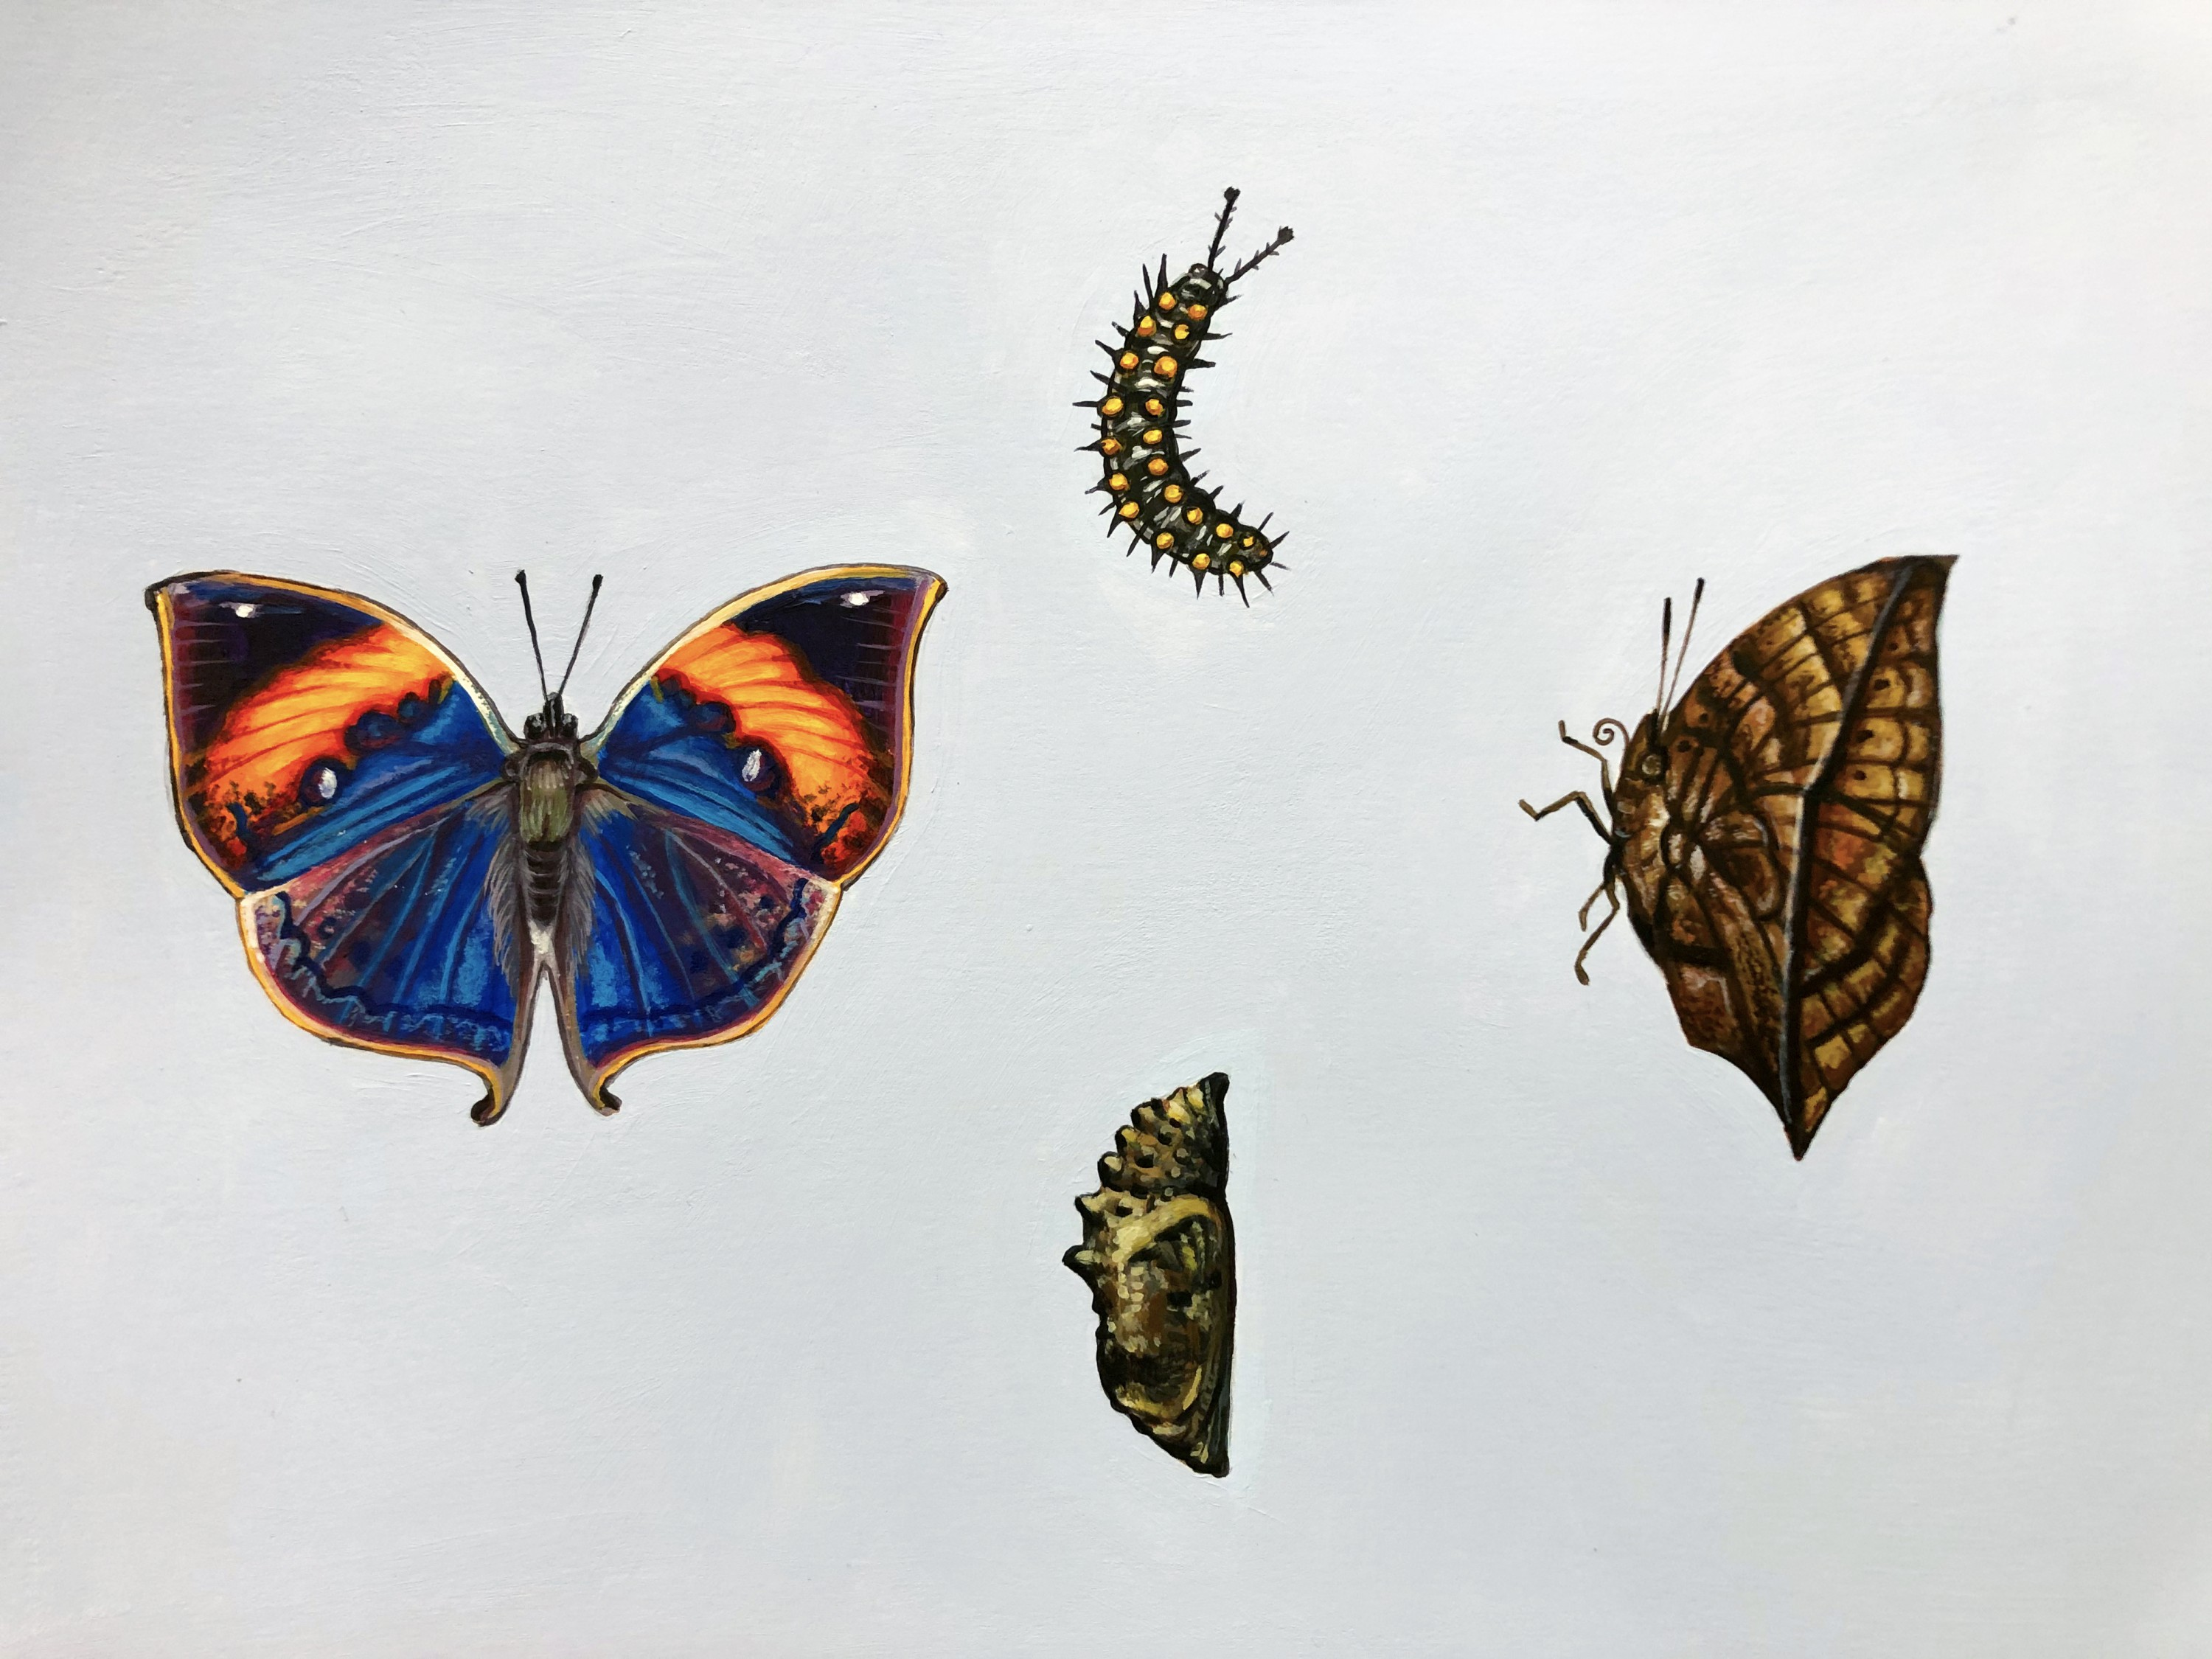 Rectangular acrylic painting of three of the life stages of the Dead Leaf Butterfly arranged on a pastel blue-gray background. The brightly colored blue and orange butterfly has its wings open to the left, the spiky yellow and black caterpillar is to the